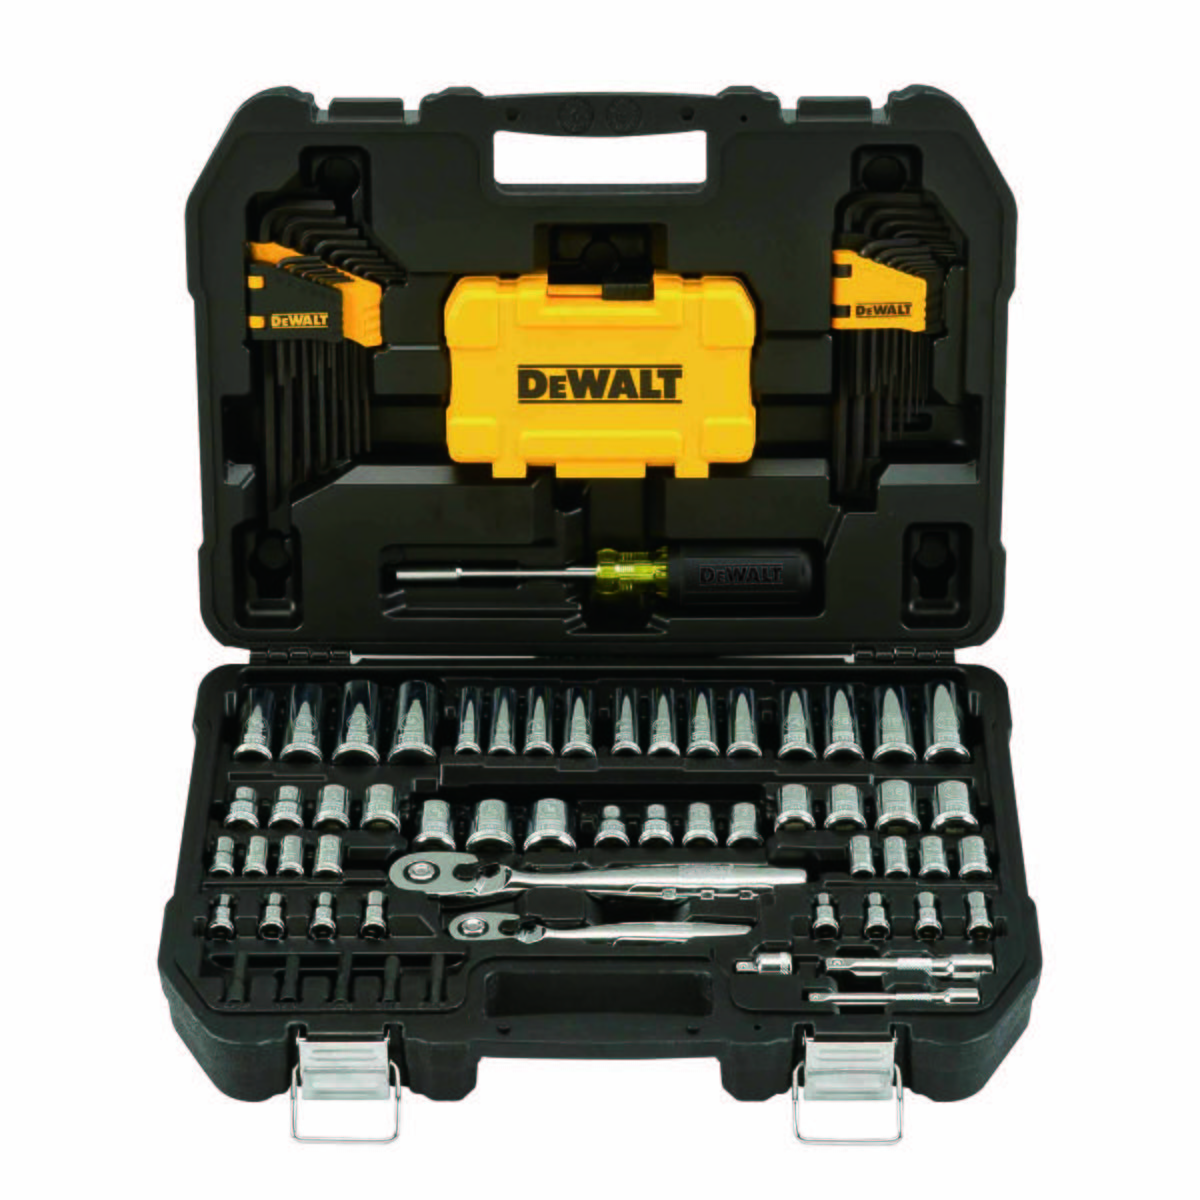 DEWALT Mech Tool Kit, 108 Piece Set, with PTA Case